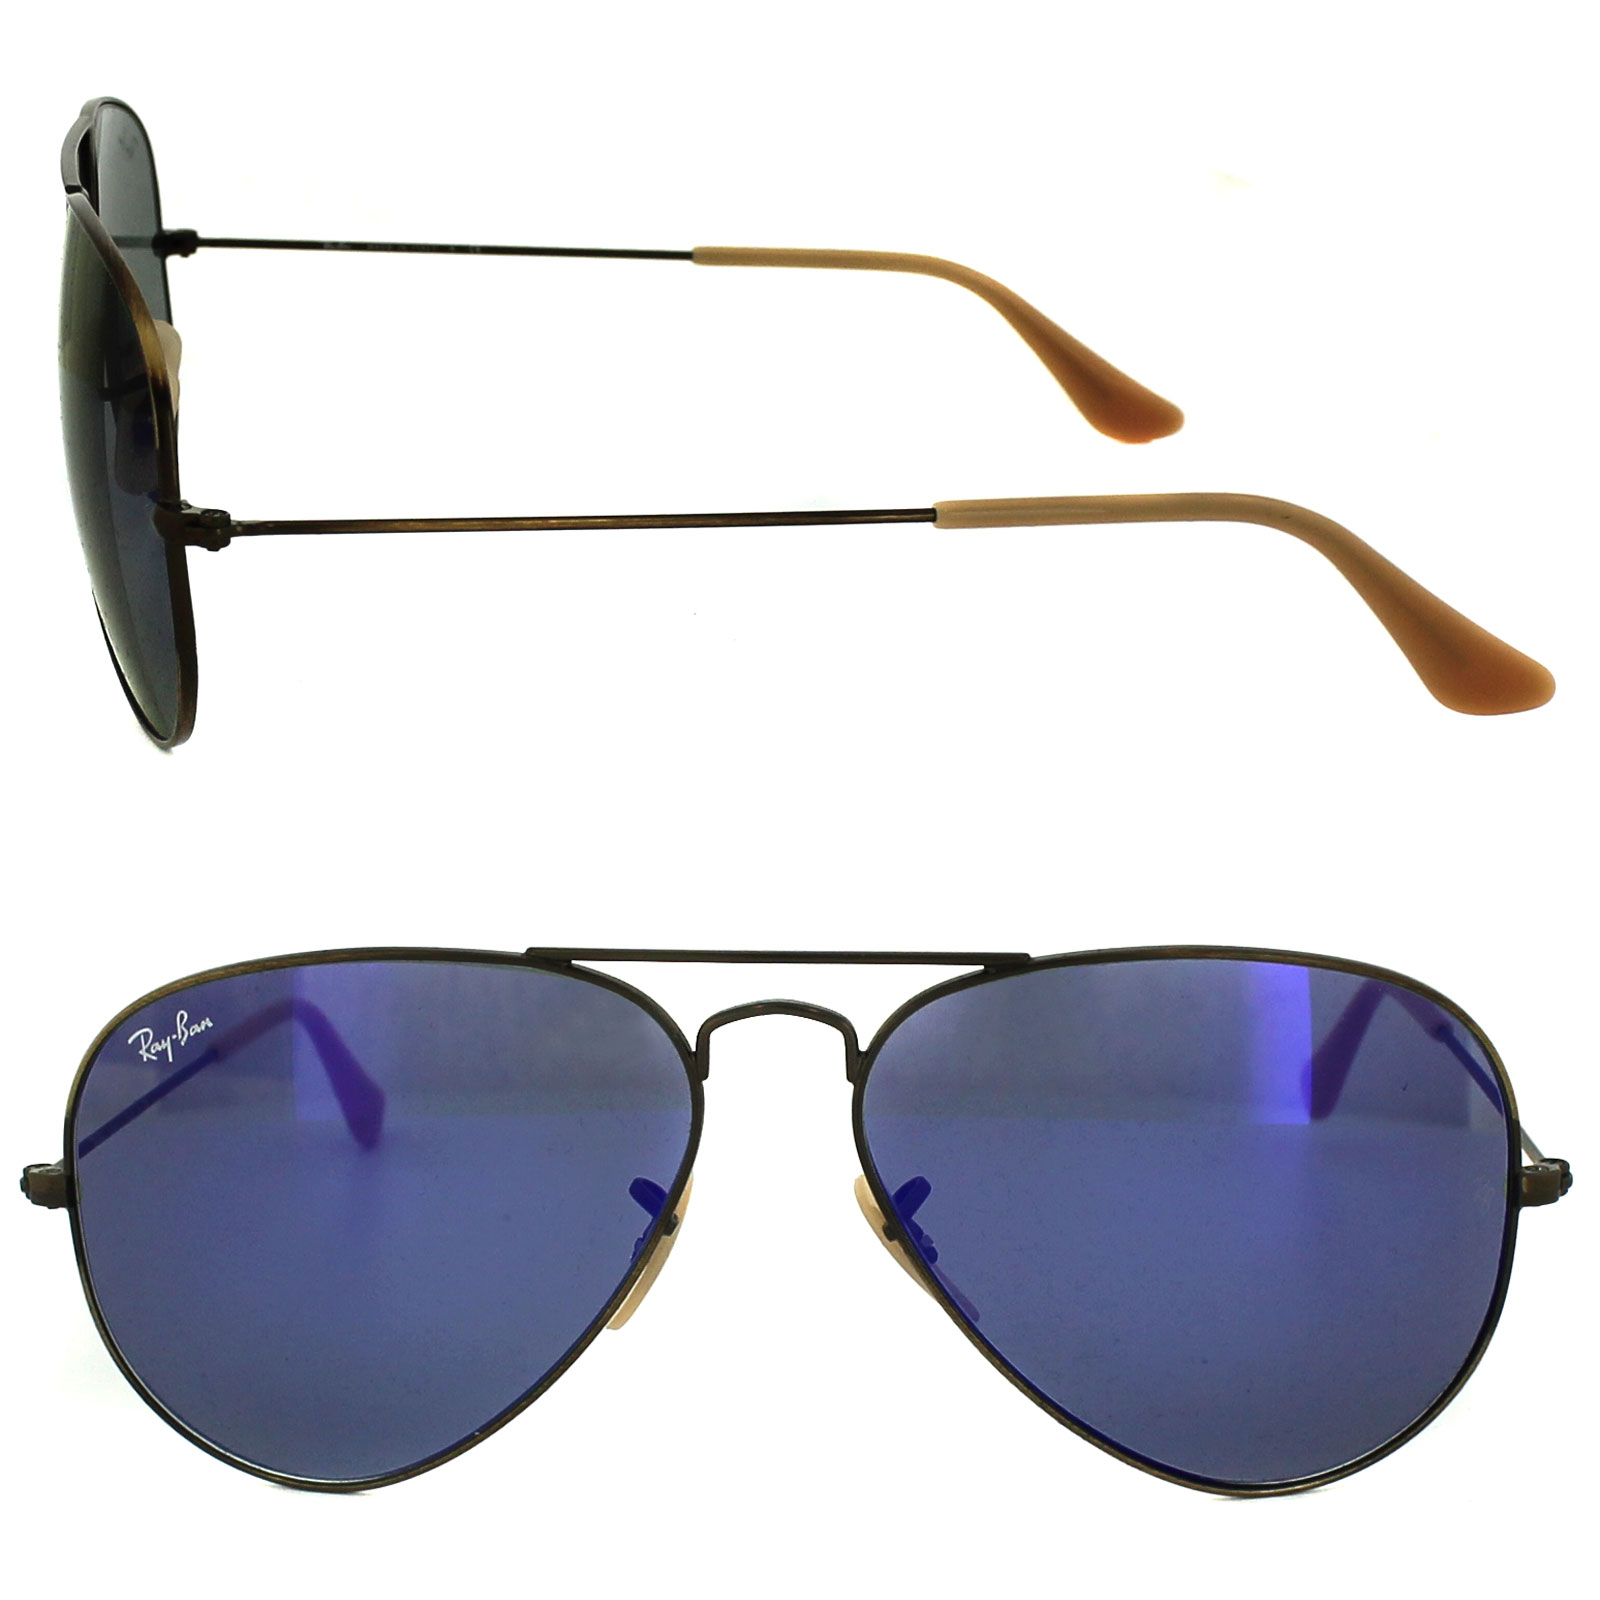 18a0693230 Sentinel Ray-Ban Sunglasses Aviator 3025 167 68 Brushed Bronze Blue Violet  Flash Mirror M